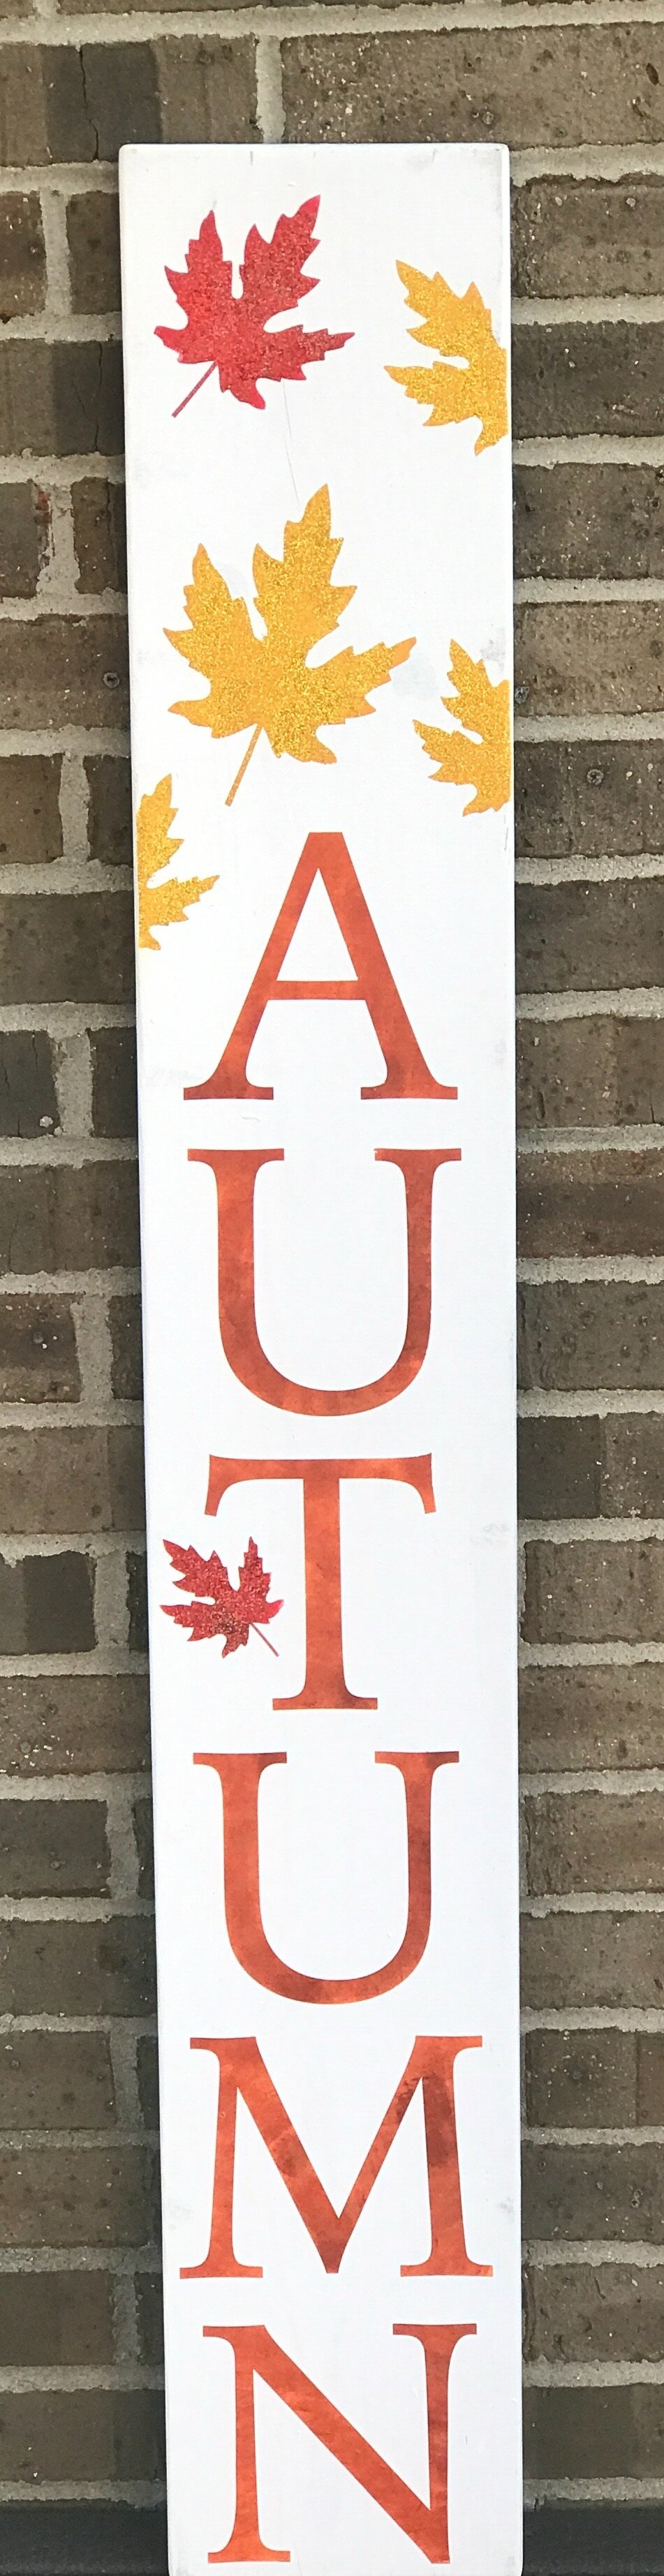 Autumn (4' x 7' Sign) $60.jpg